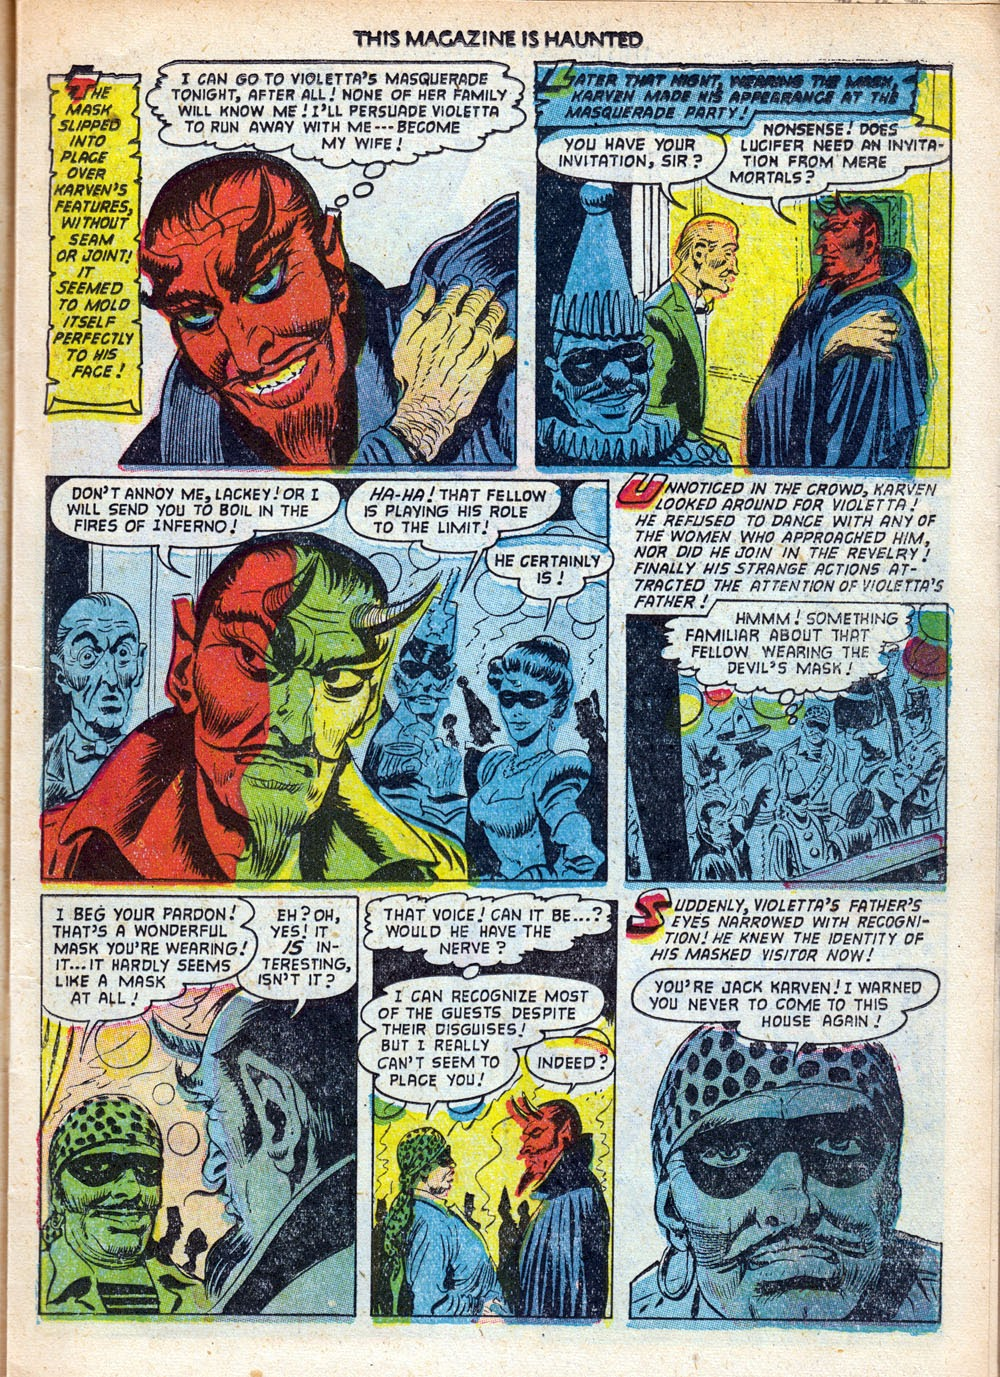 Read online This Magazine Is Haunted comic -  Issue #9 - 15